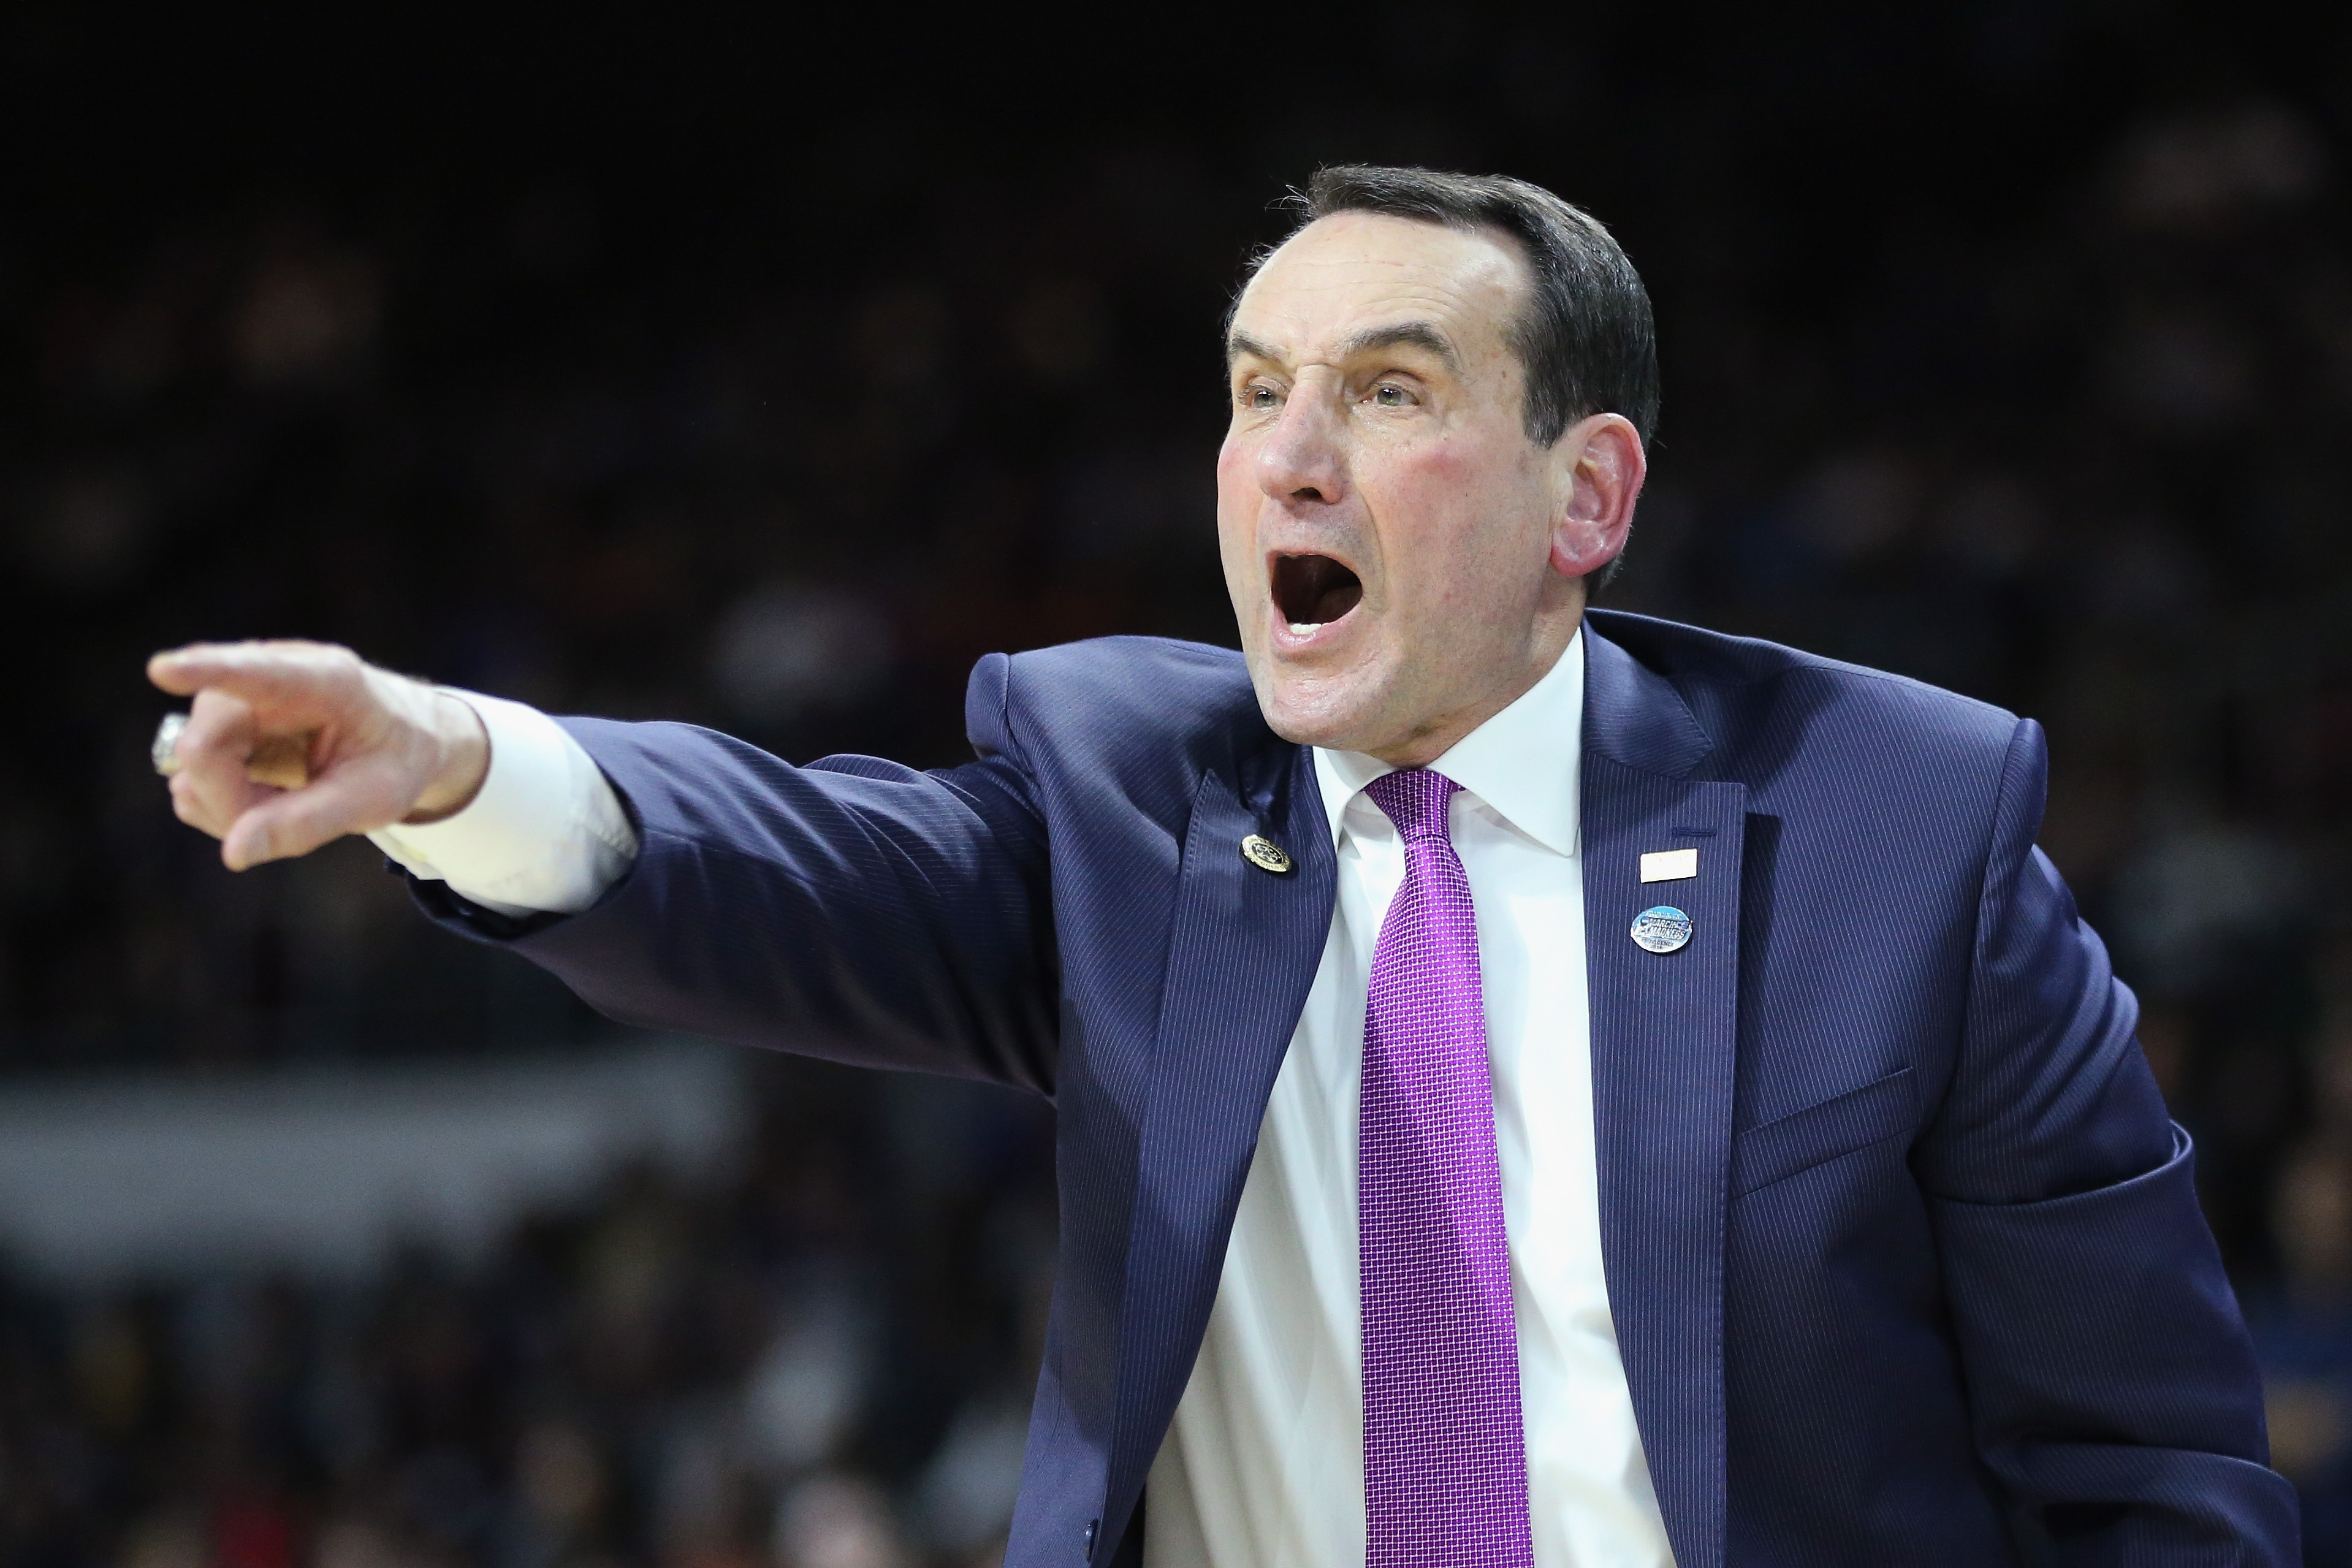 Duke's Mike Krzyzewski was actually trying to teach Oregon's Dillon Brooks and protect him at the same time.